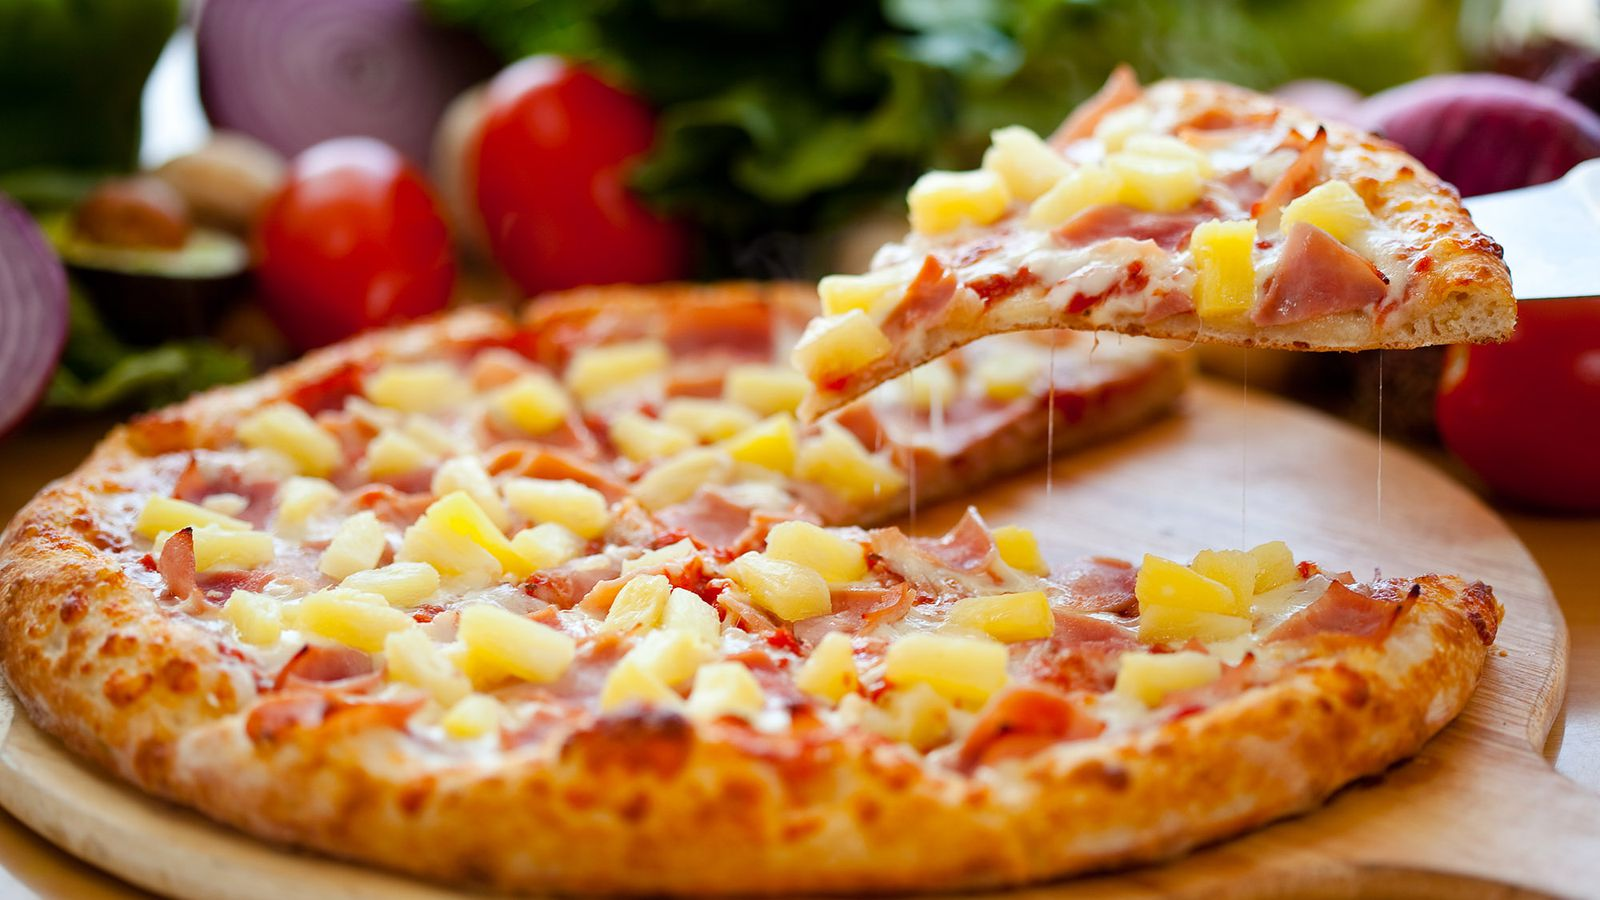 Hawaiian Pizza Inventor Sam Panopoulos Has Died - Eater